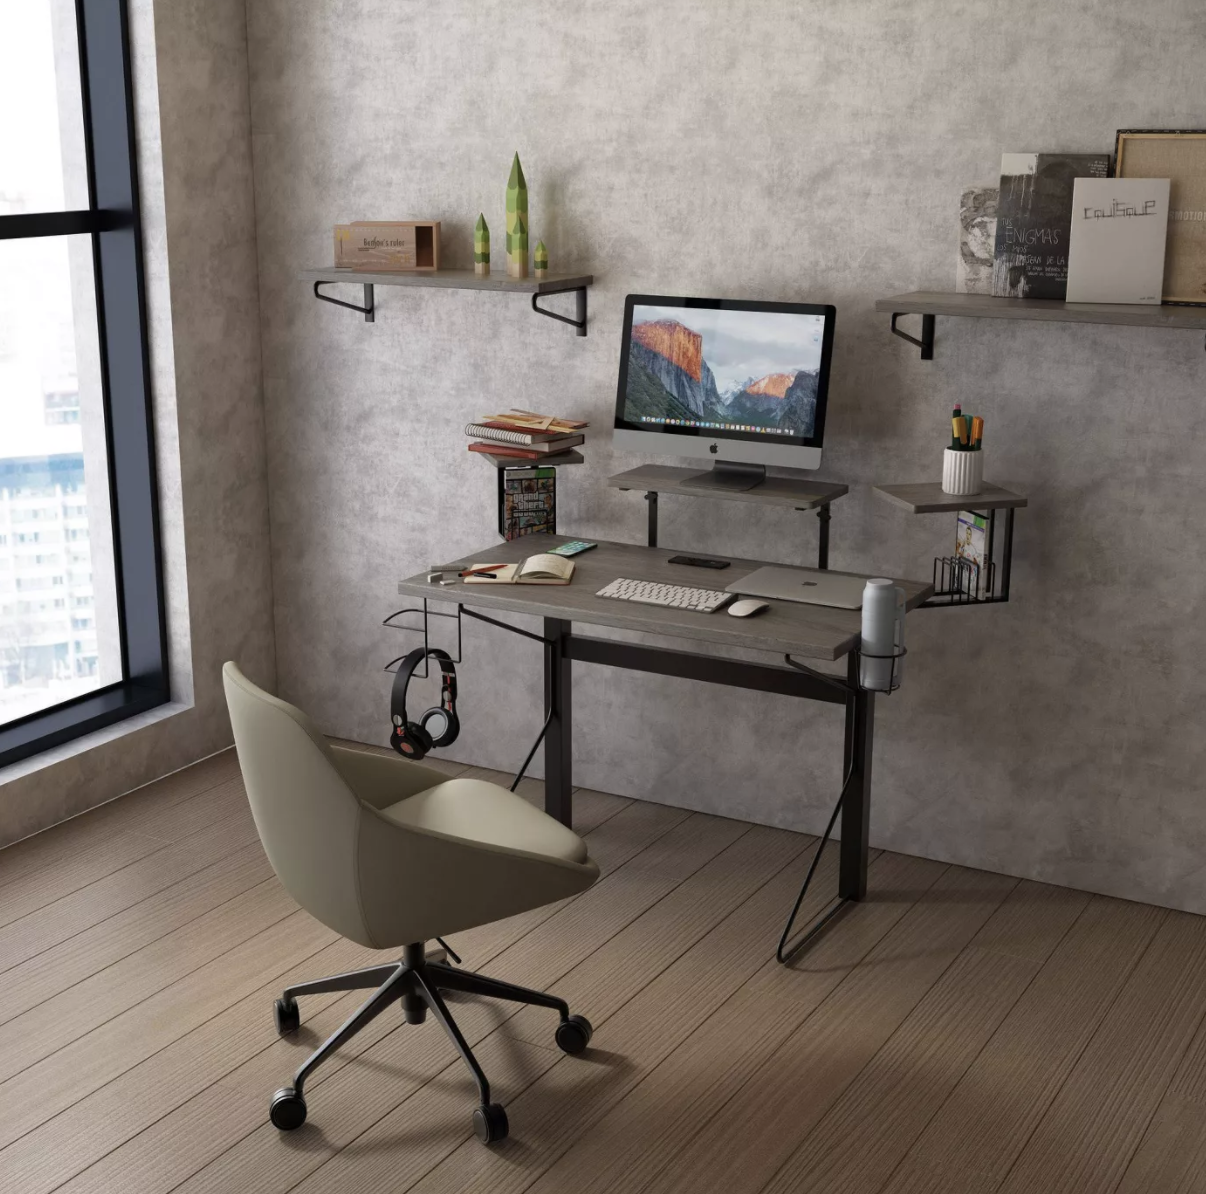 a thin gaming desk with a cup holder, hook for headphones, and three elevated platforms